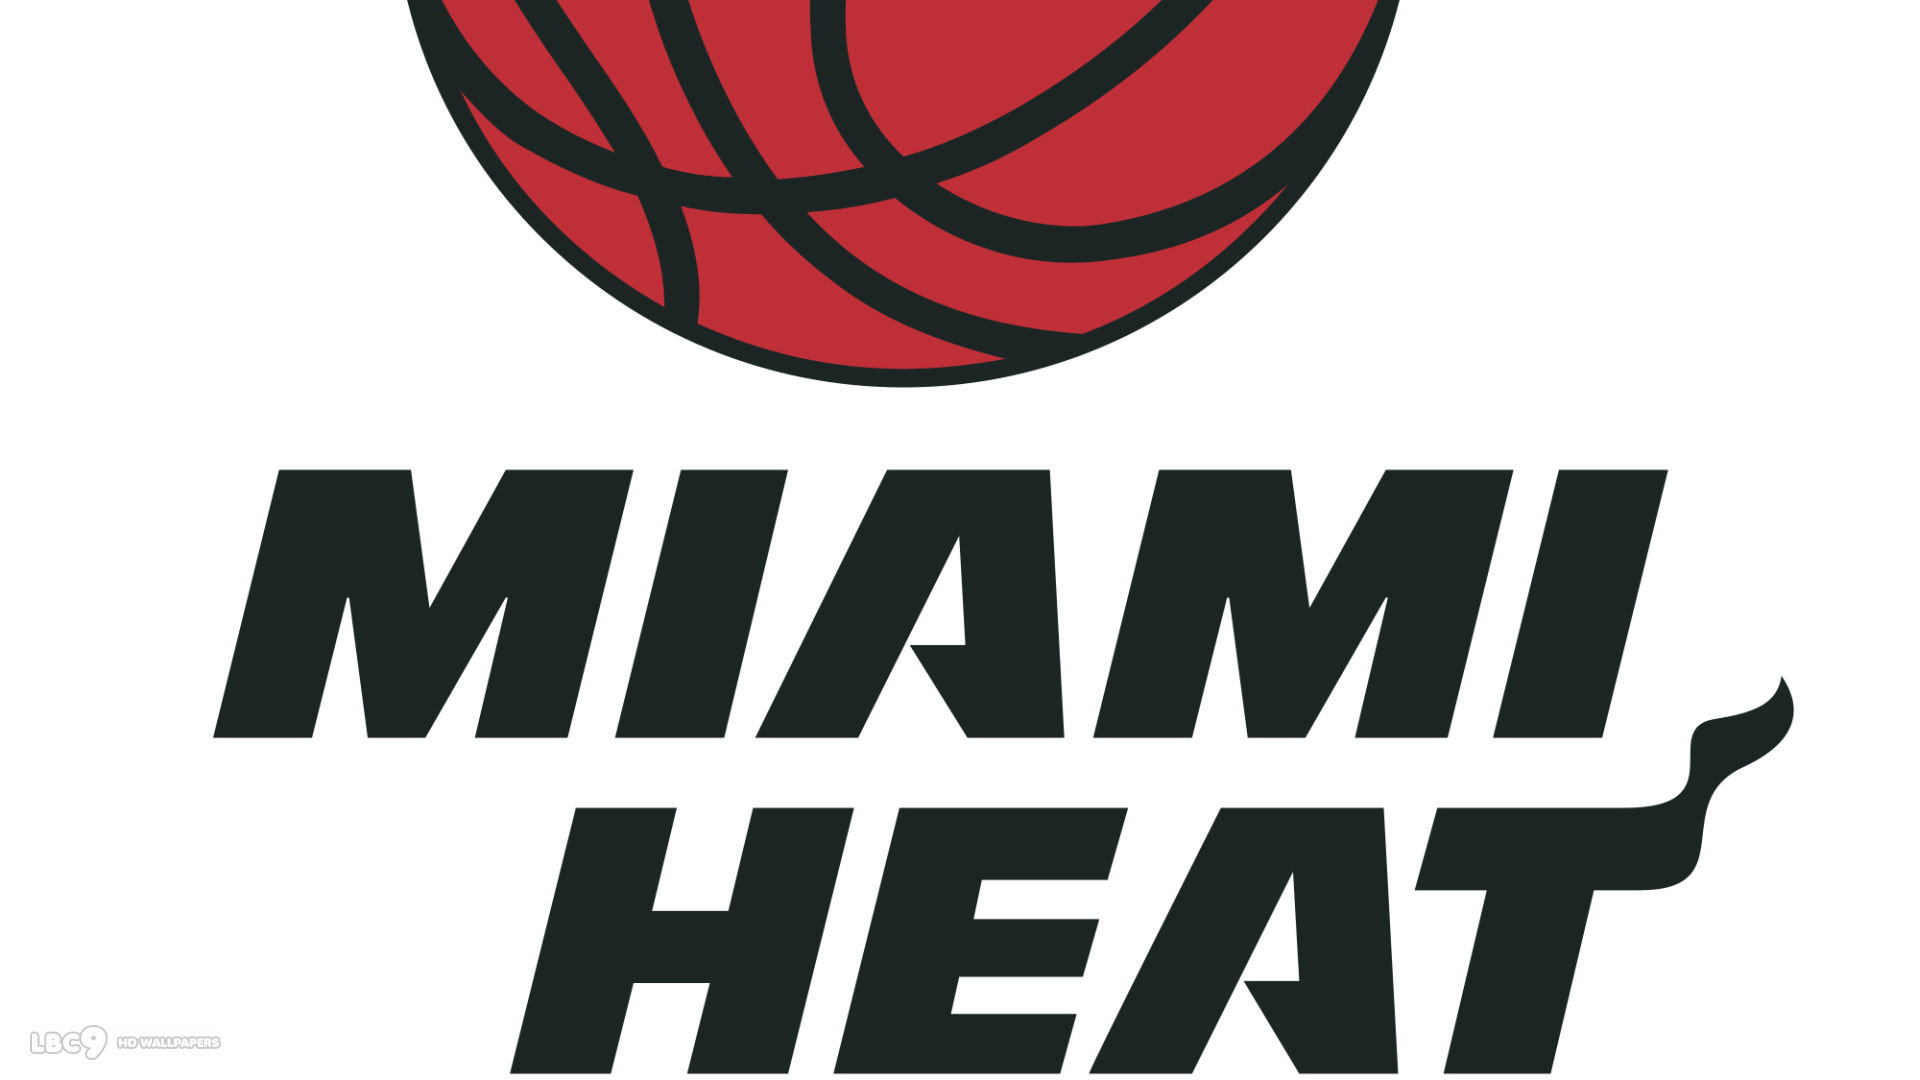 miami heat logo clipart at getdrawings | free for personal use